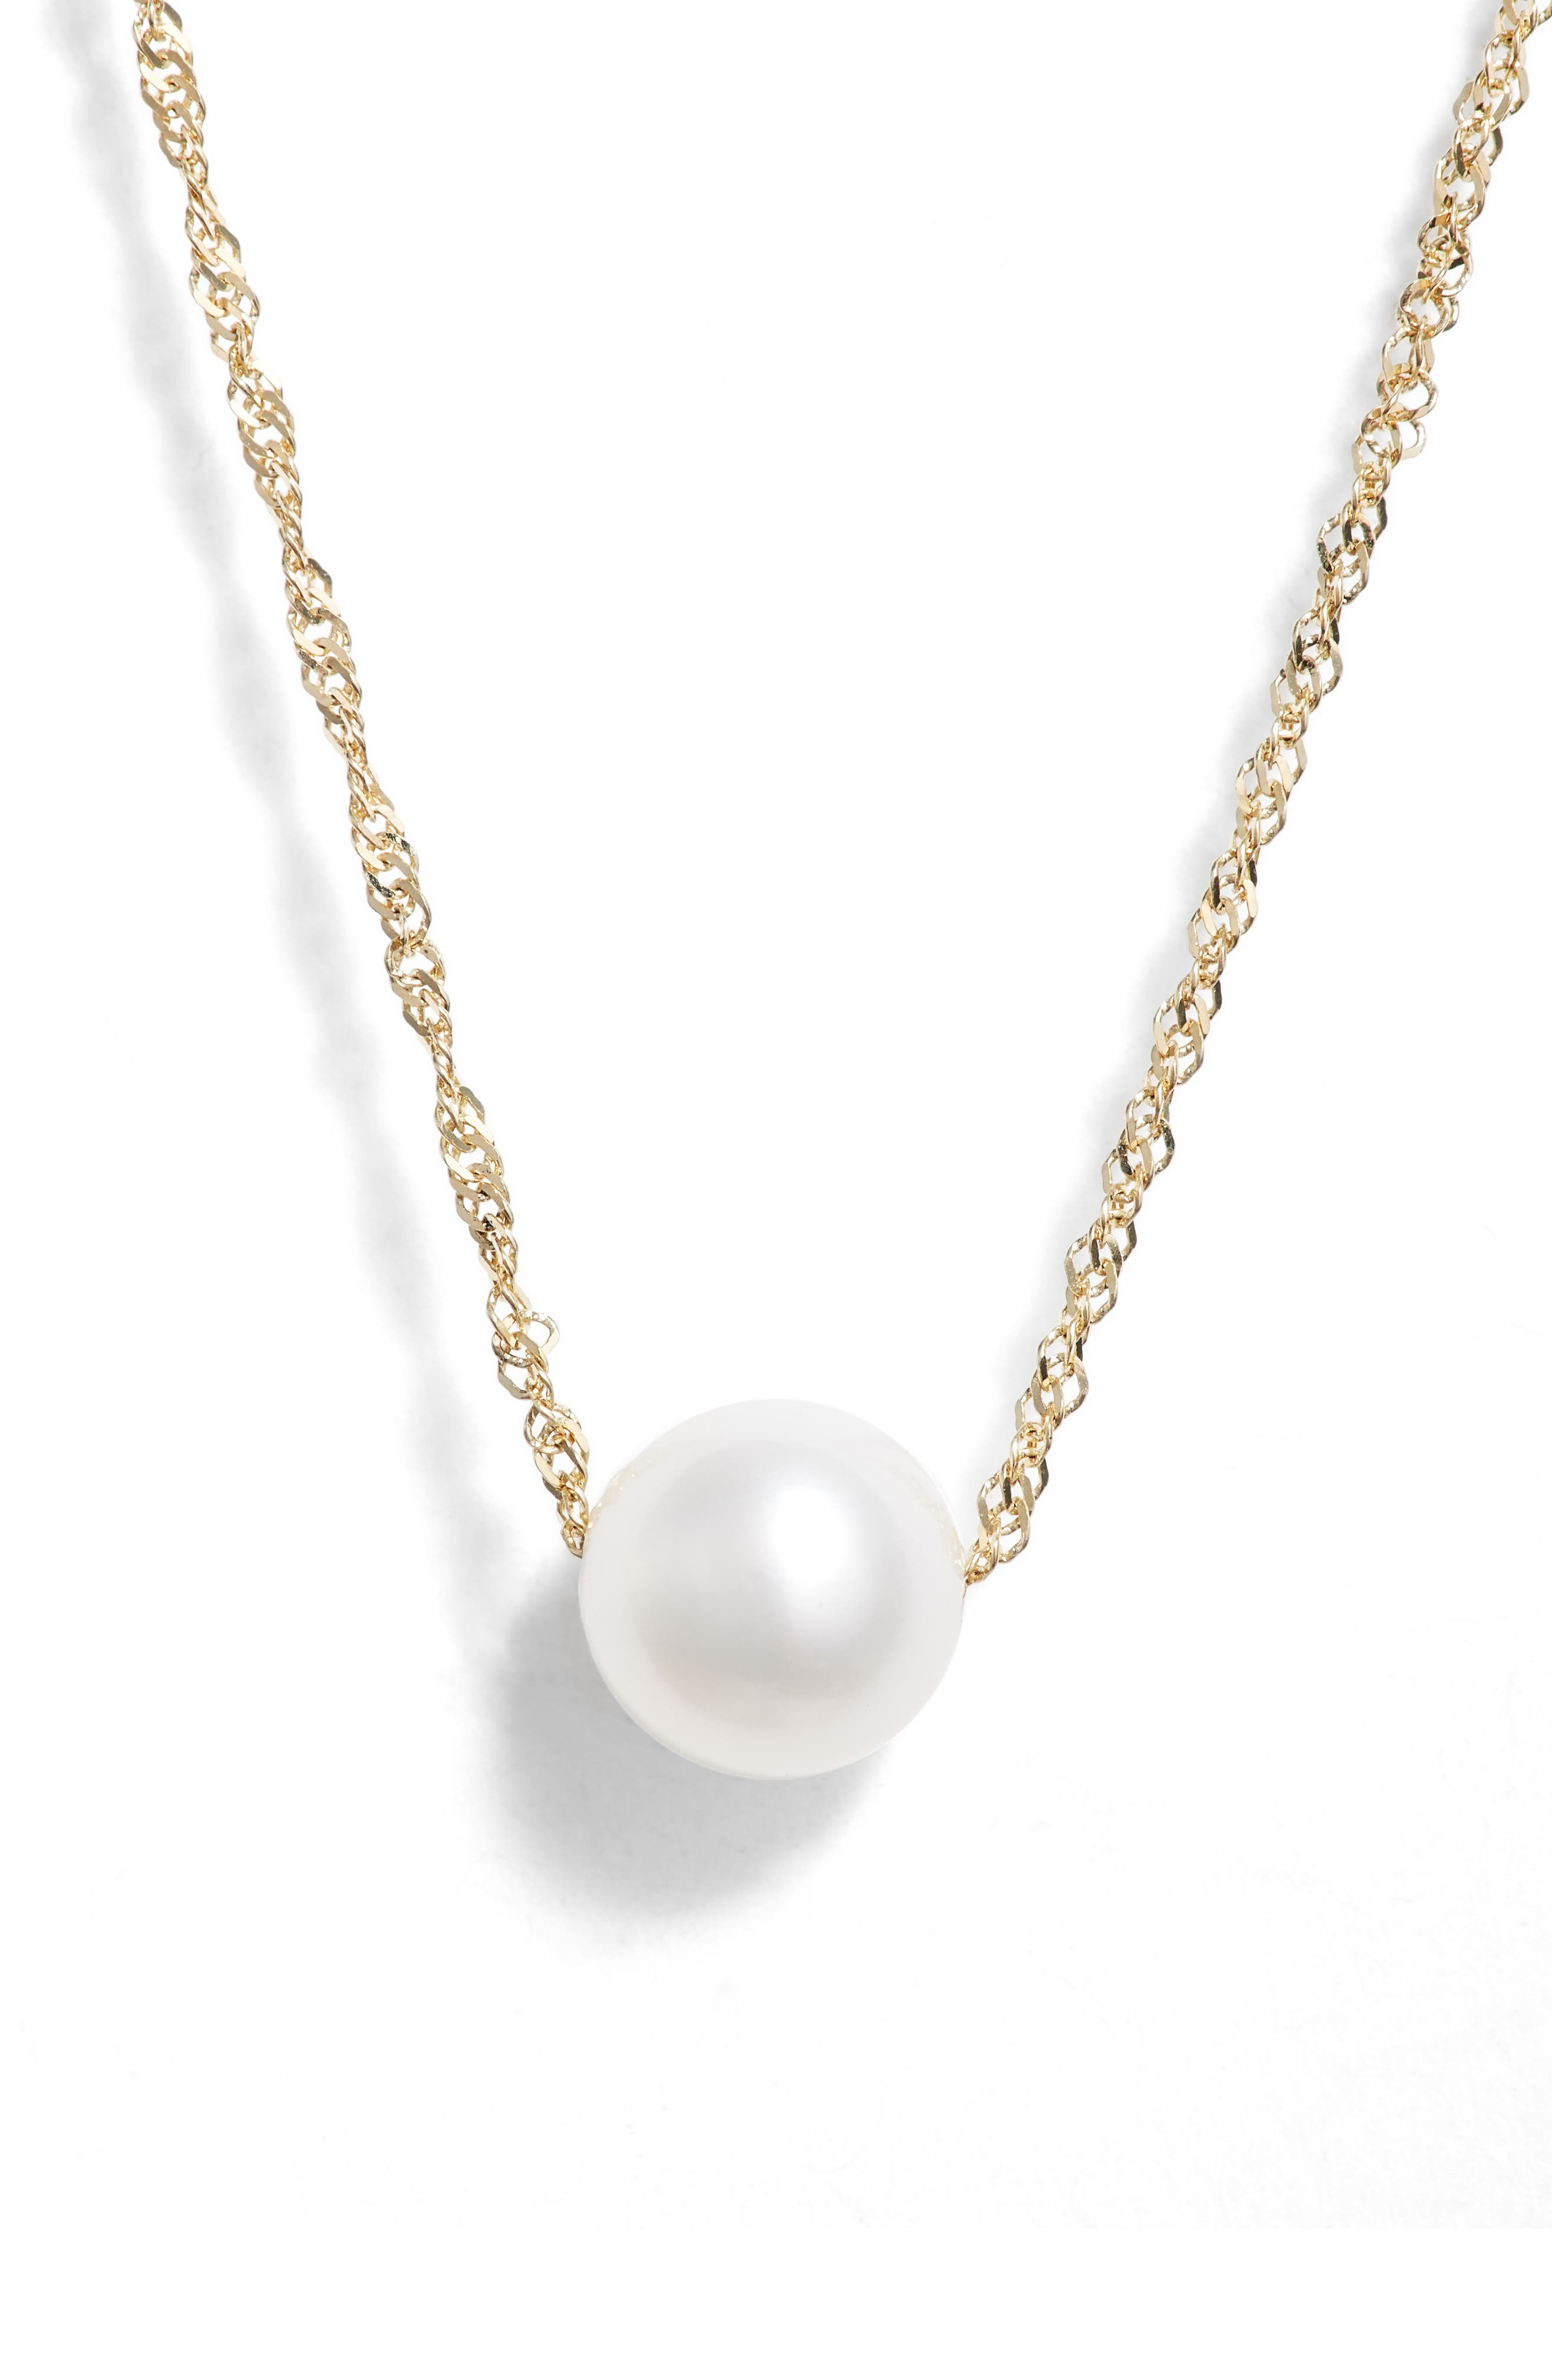 Petite Pearl Necklace,                             Main thumbnail 1, color,                             YELLOW GOLD/ PEARL